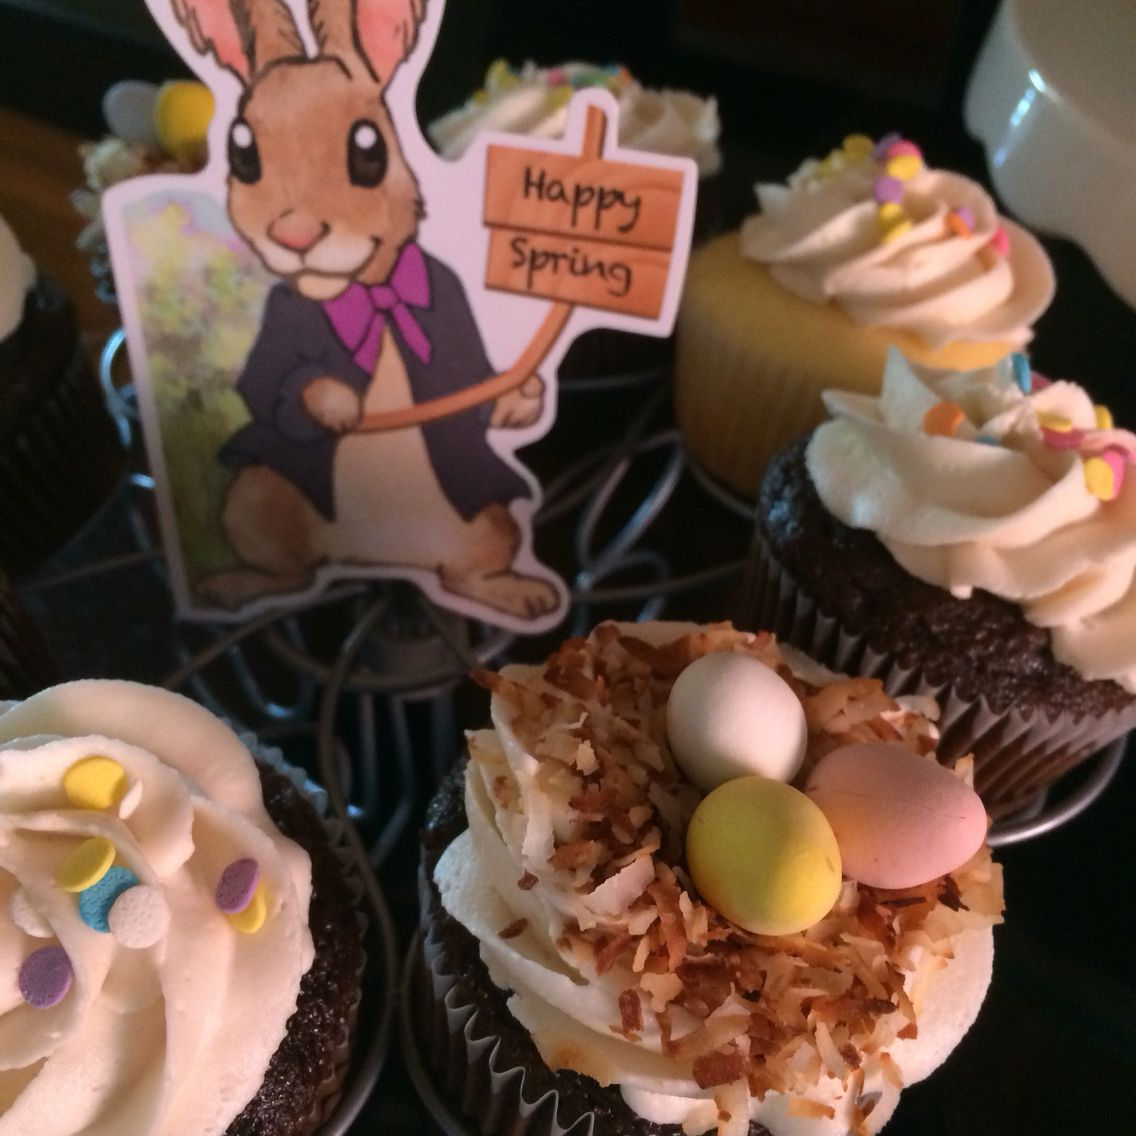 Easter / spring cupcake display. Simple cupcakes decorated with toasted coconut and Cadbury eggs.